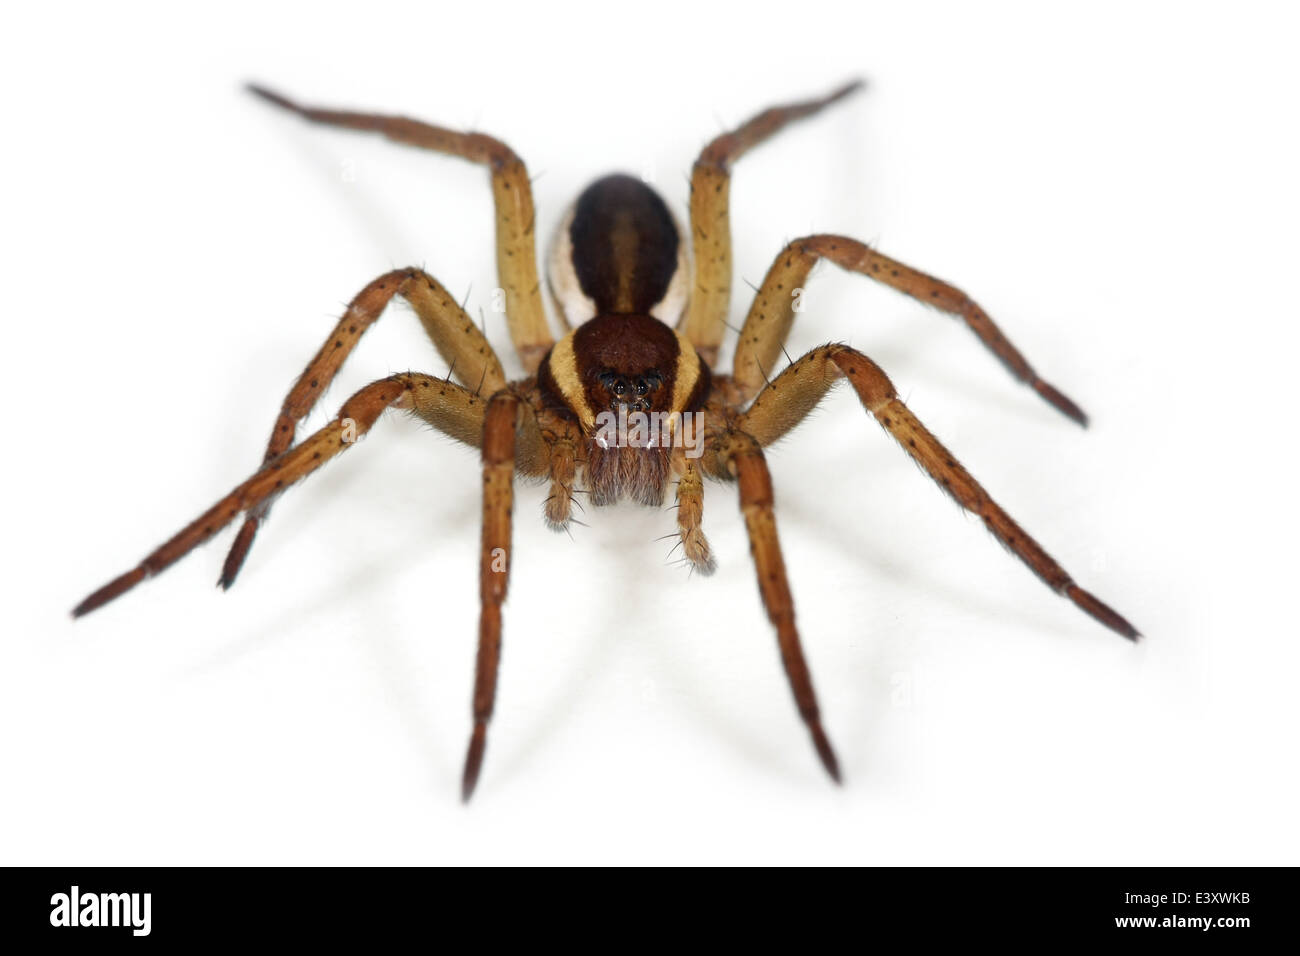 Female Dolomedes fimbriatus (Great Raft spider) part of the family Pisauridae, Nursery web spiders, isolated on - Stock Image